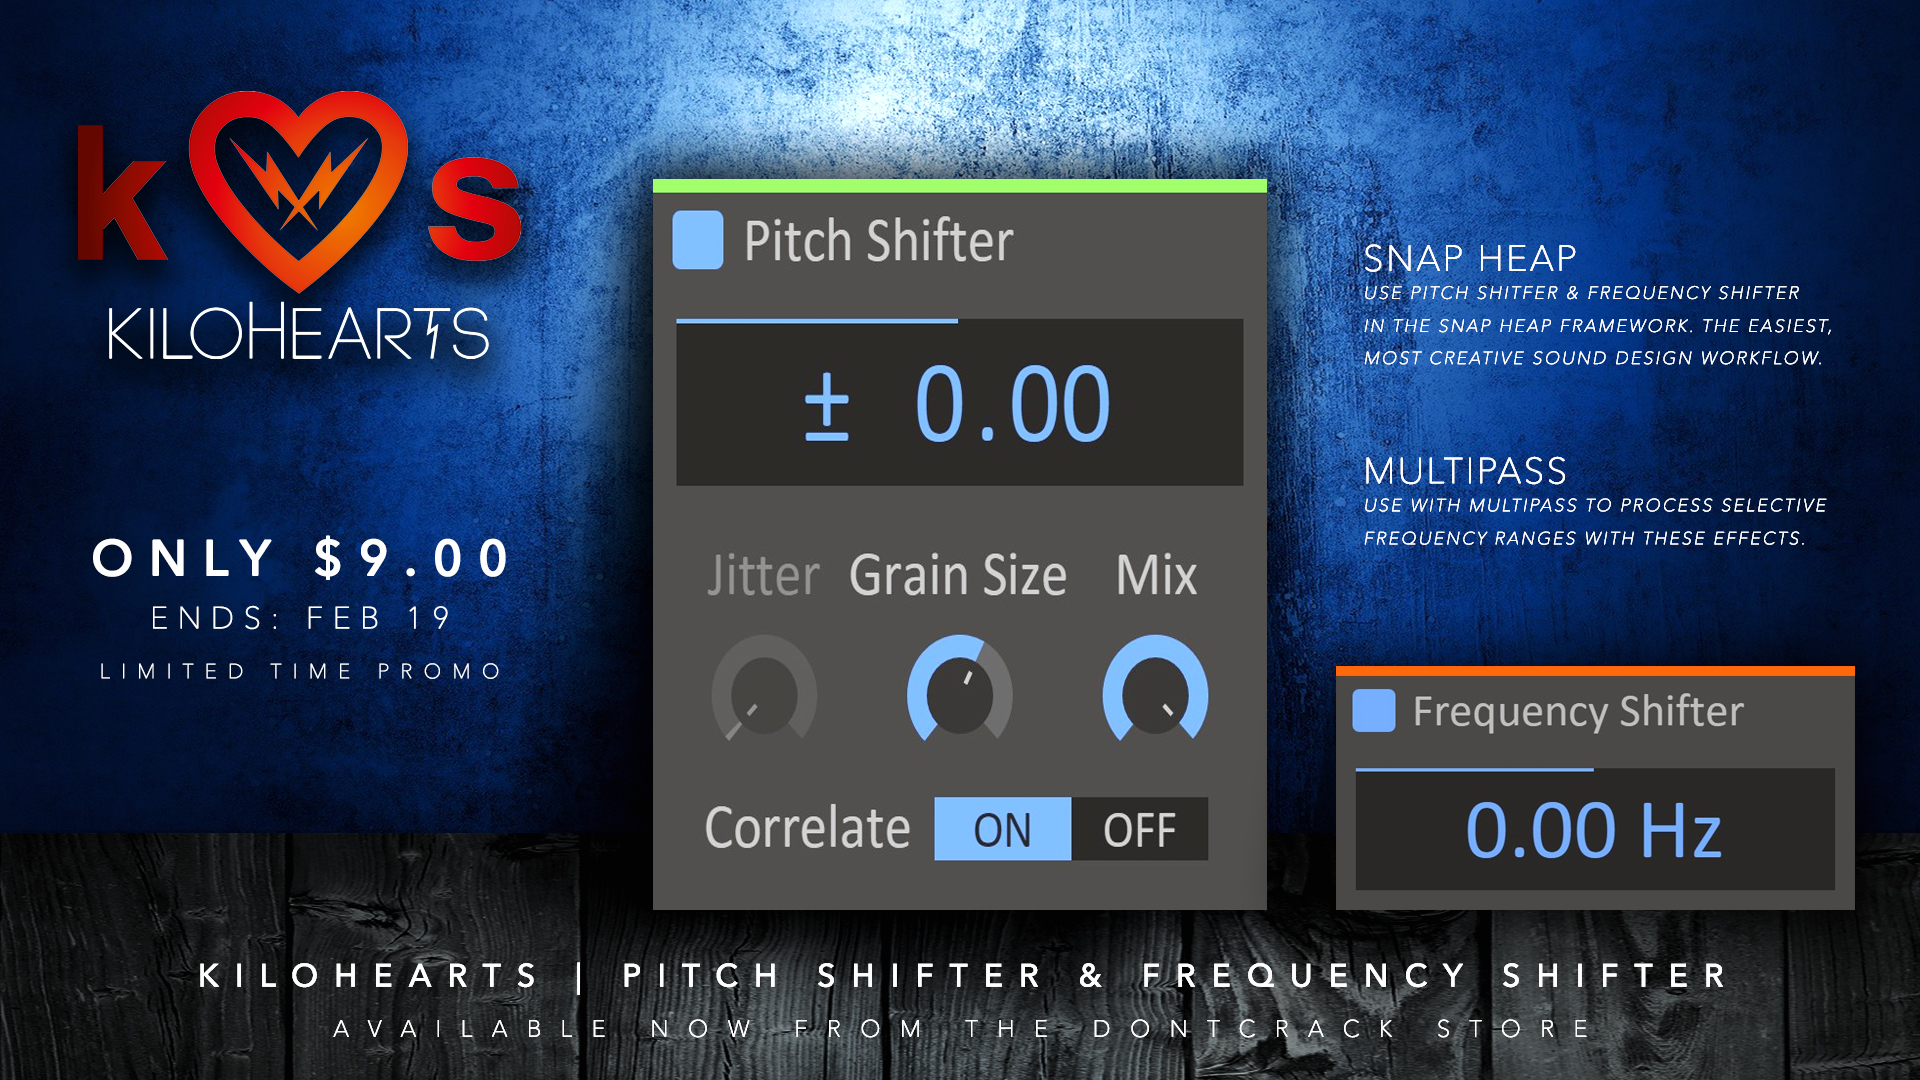 Kilohearts Frequency Shifter & Pitch Shifter Promo